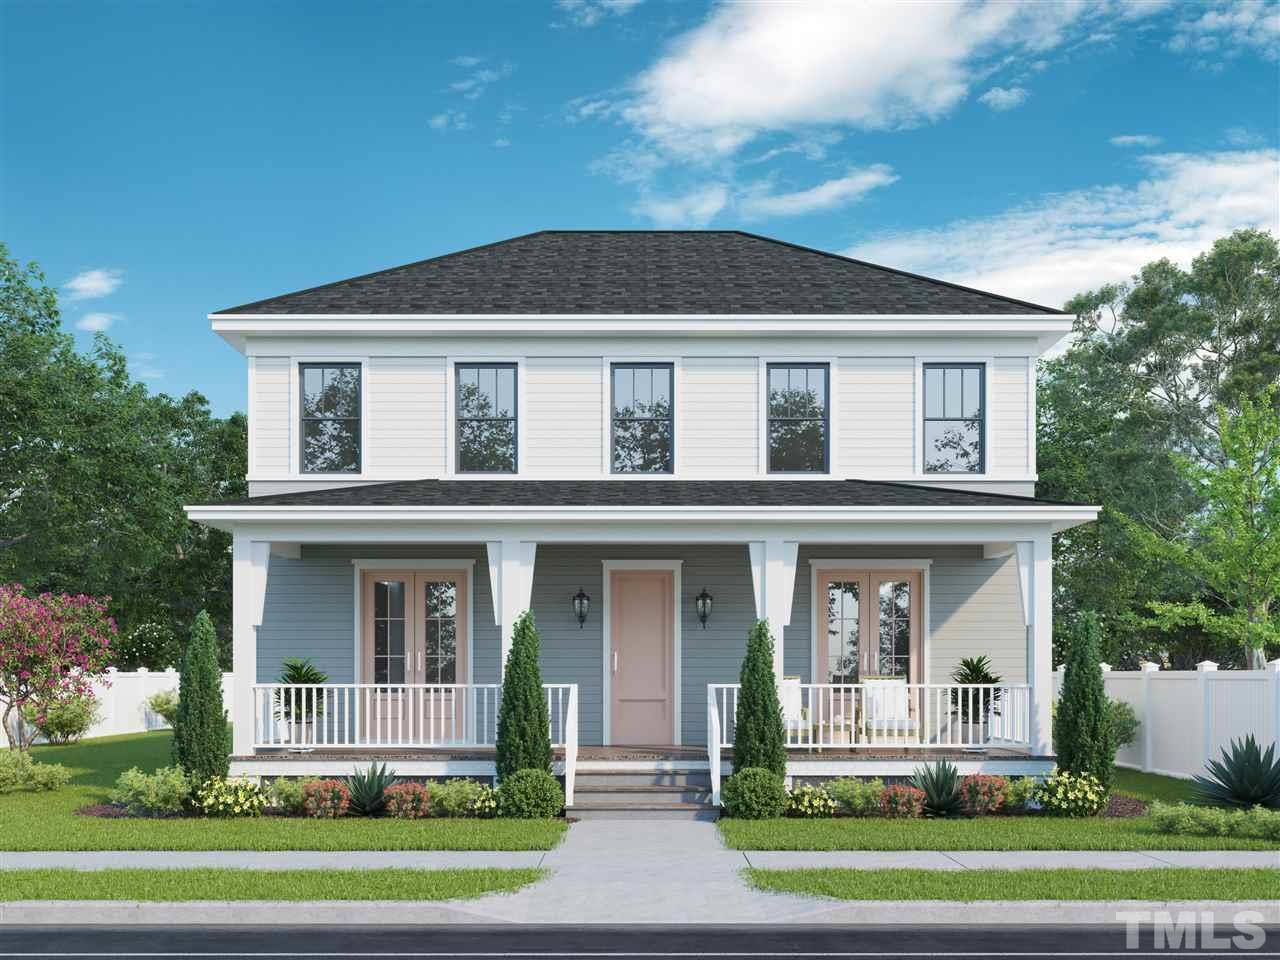 Artist rendering of this beautiful 4-square style new home. Picture yourself sipping lemonade on that beautiful front porch!